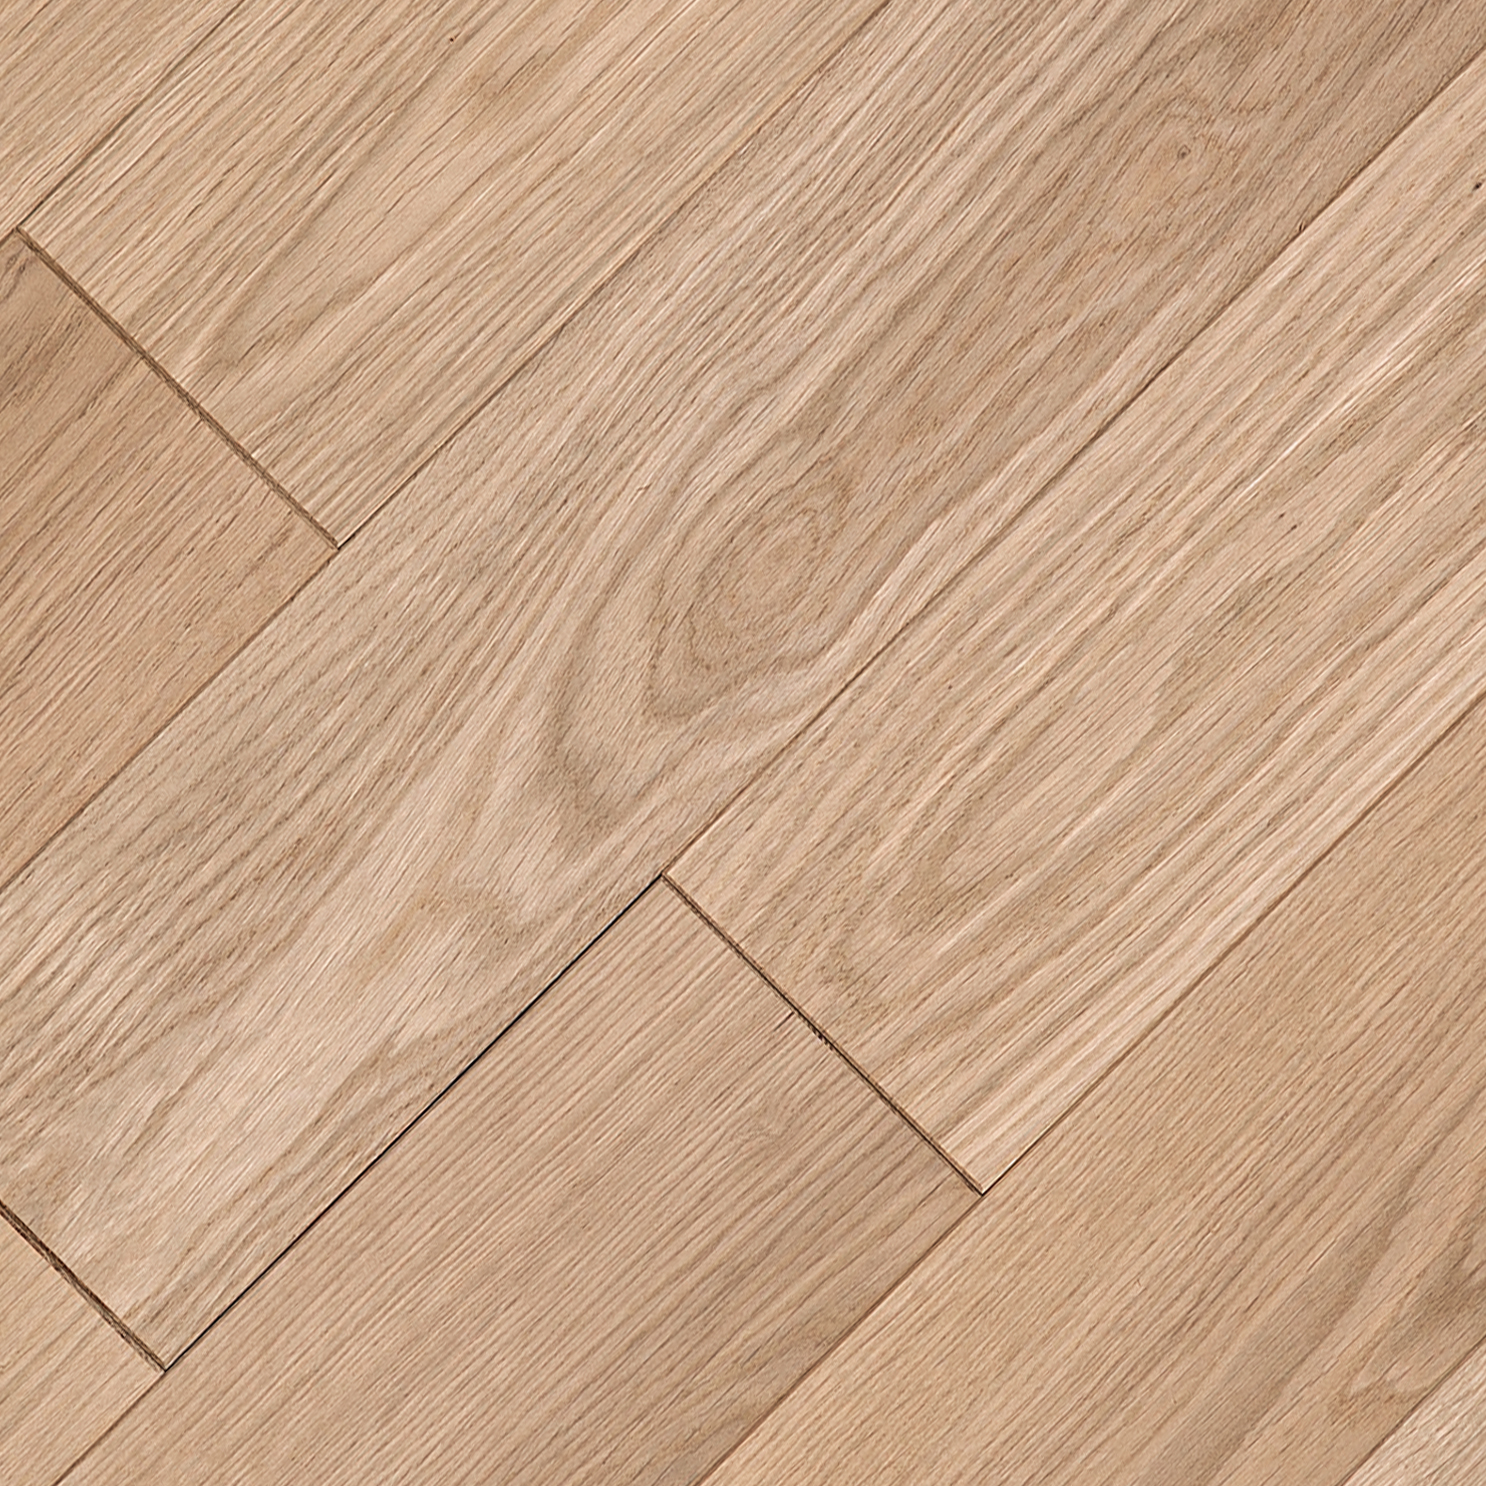 PARAT 20 Oak RA select raw solid plank